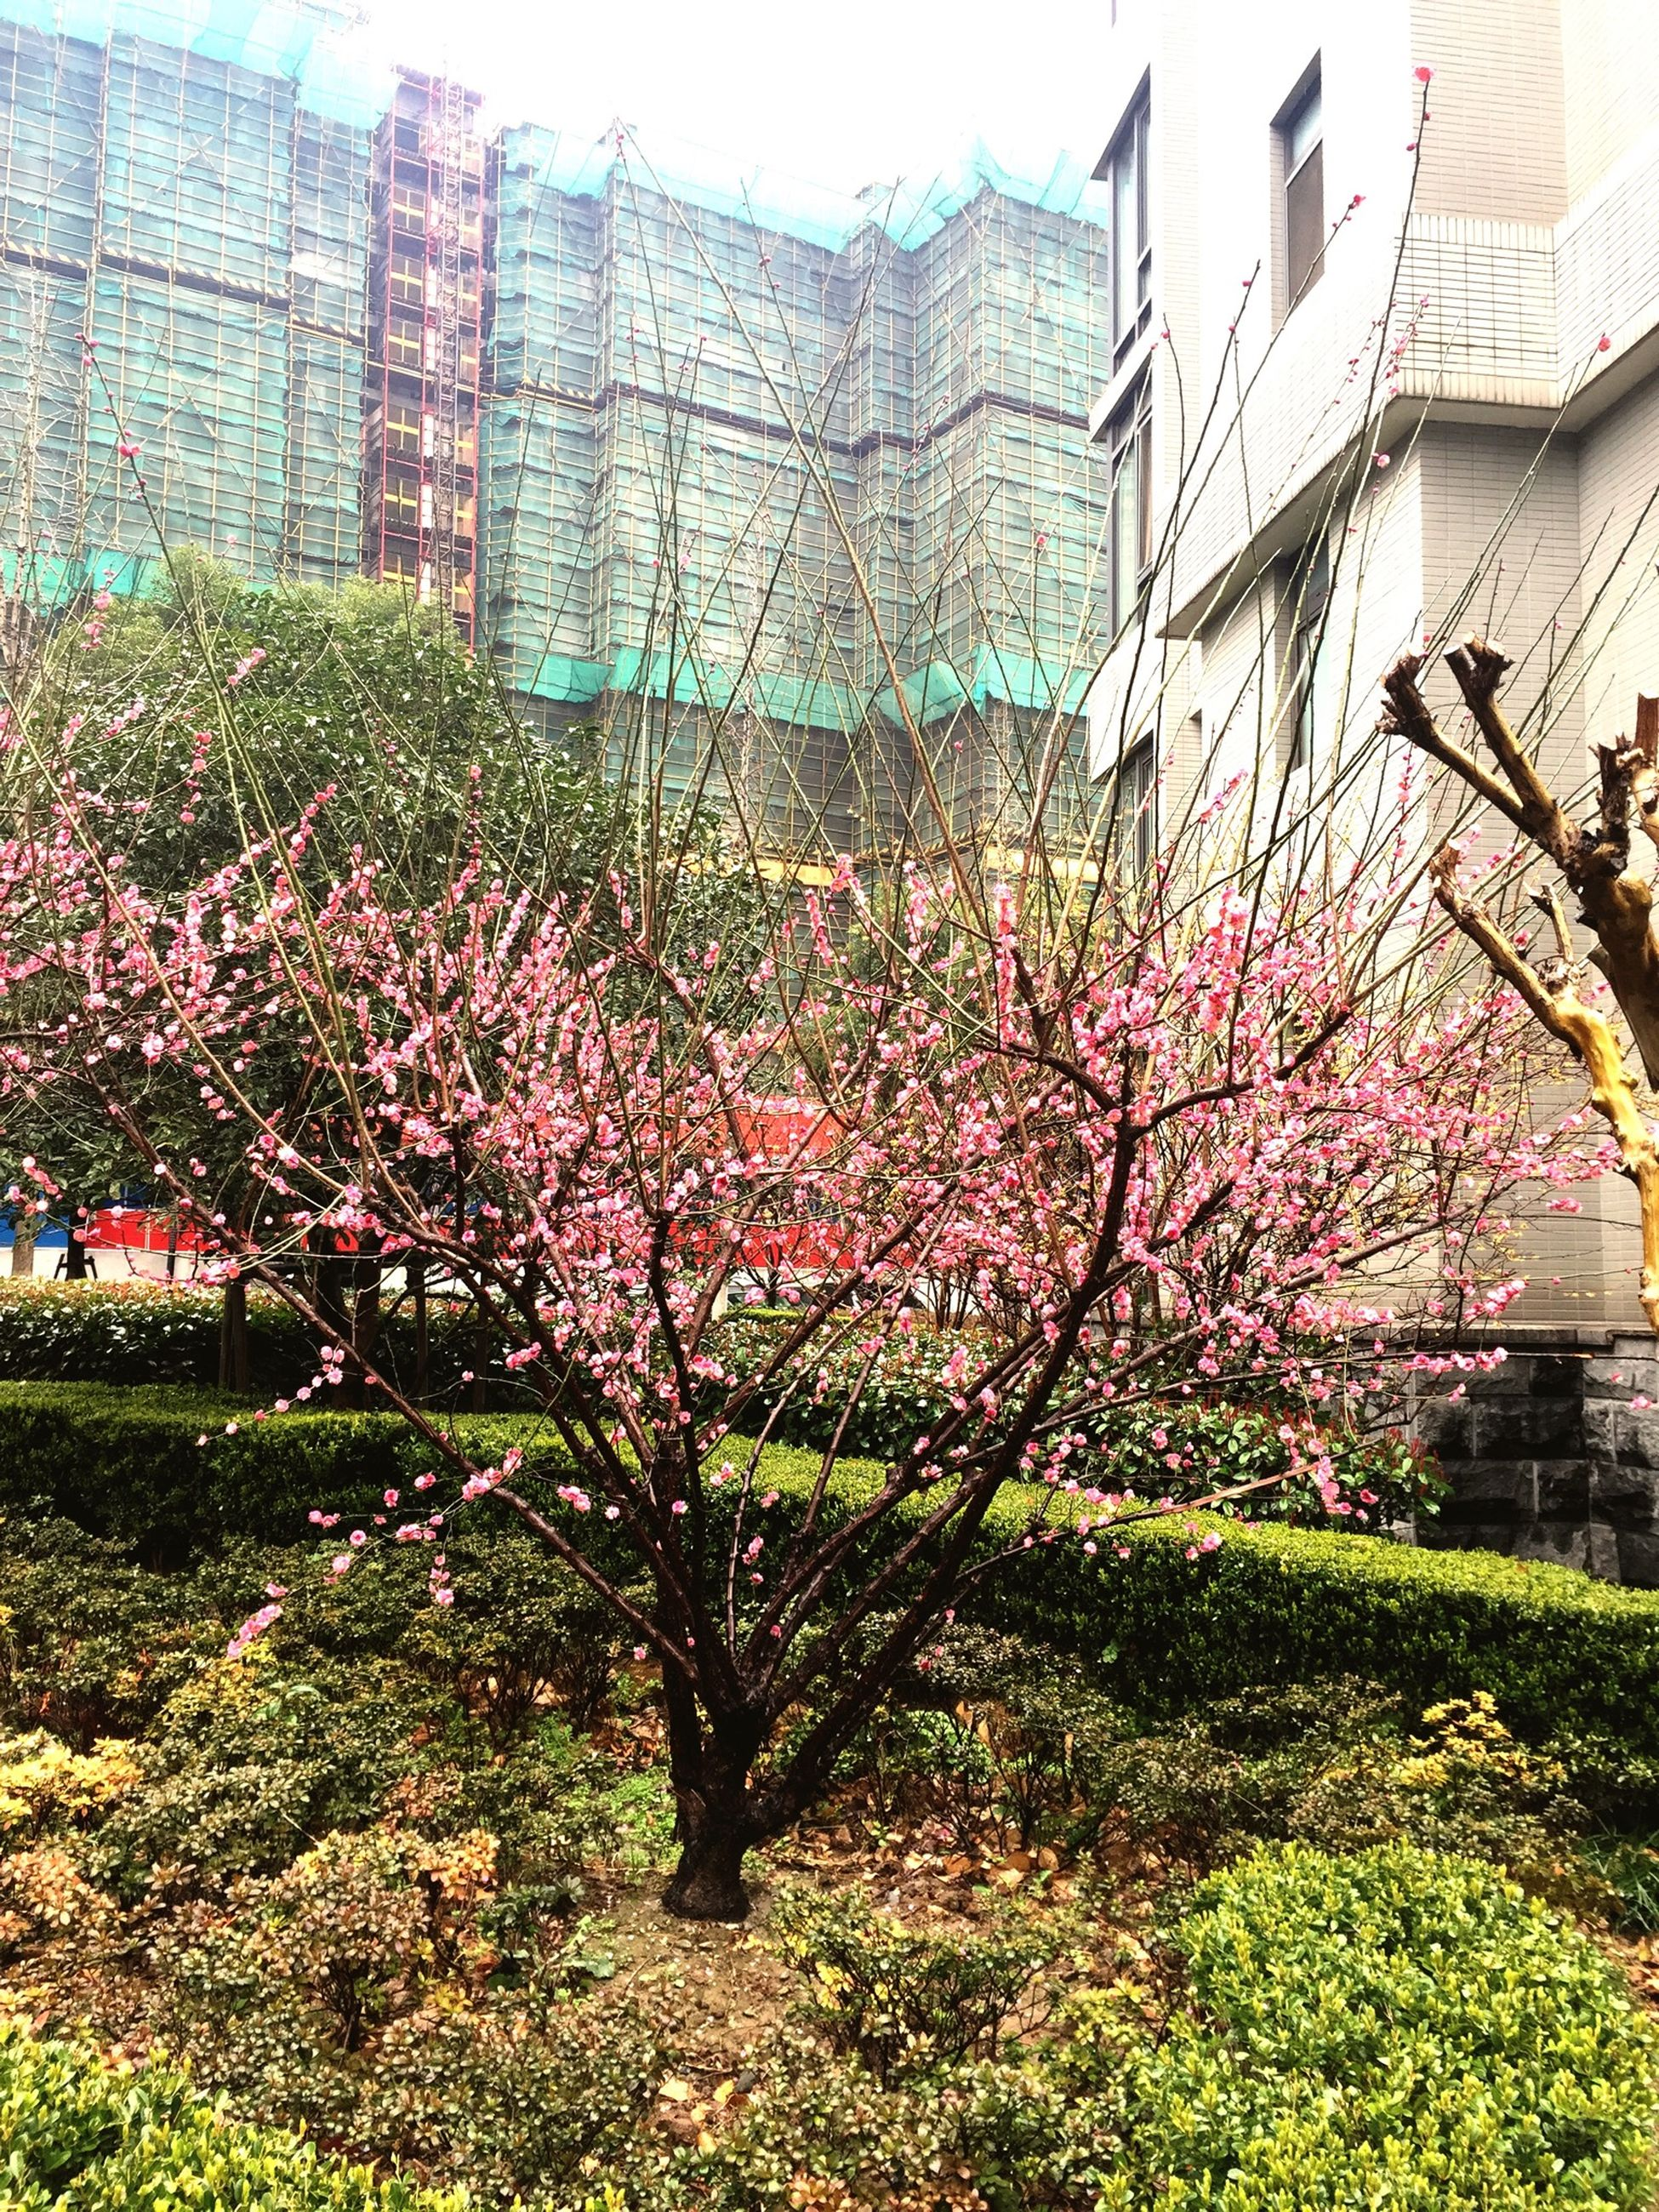 building exterior, architecture, built structure, flower, tree, growth, plant, freshness, city, nature, branch, lawn, grass, day, park - man made space, house, building, outdoors, blossom, beauty in nature